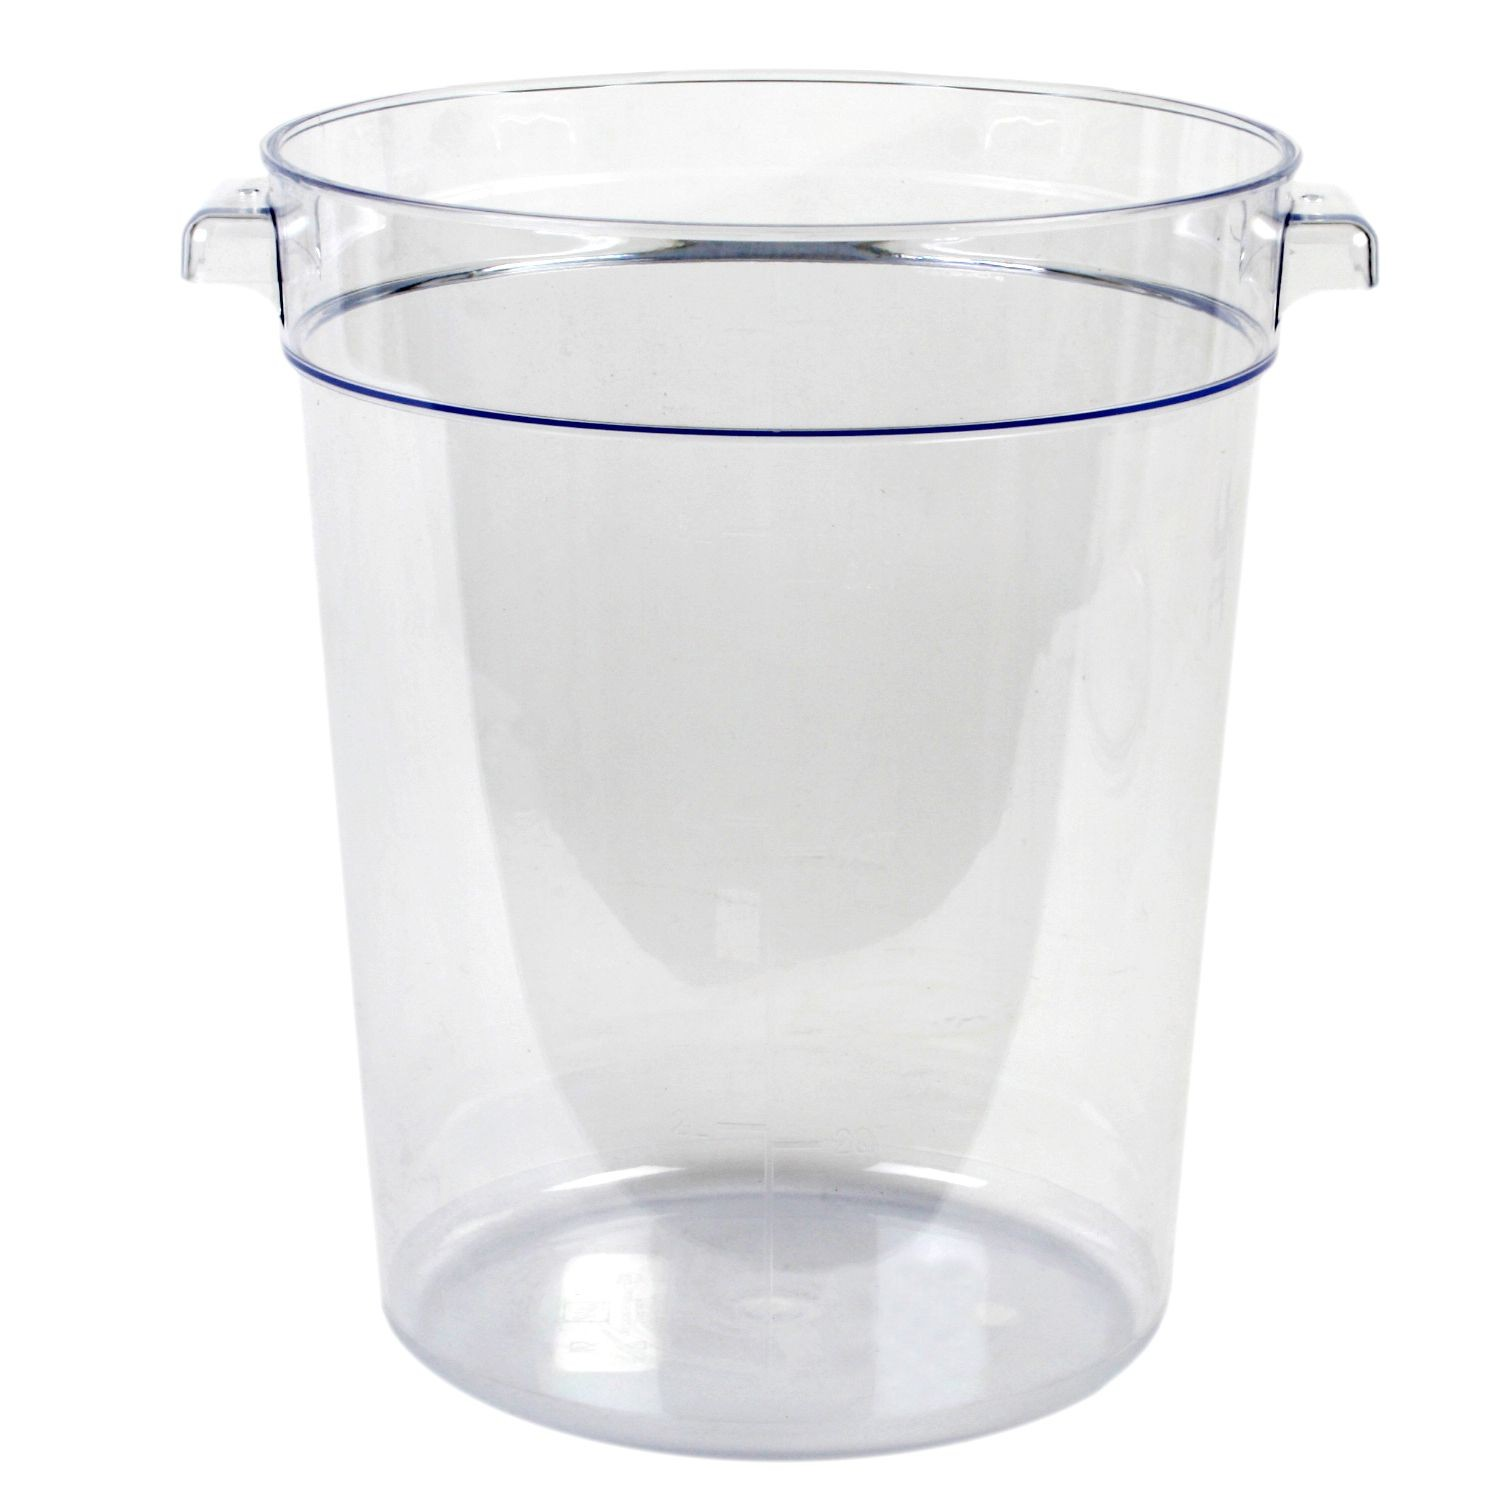 Thunder Group PLRFT008PC Food Storage Container 8 Qt. - 1 doz